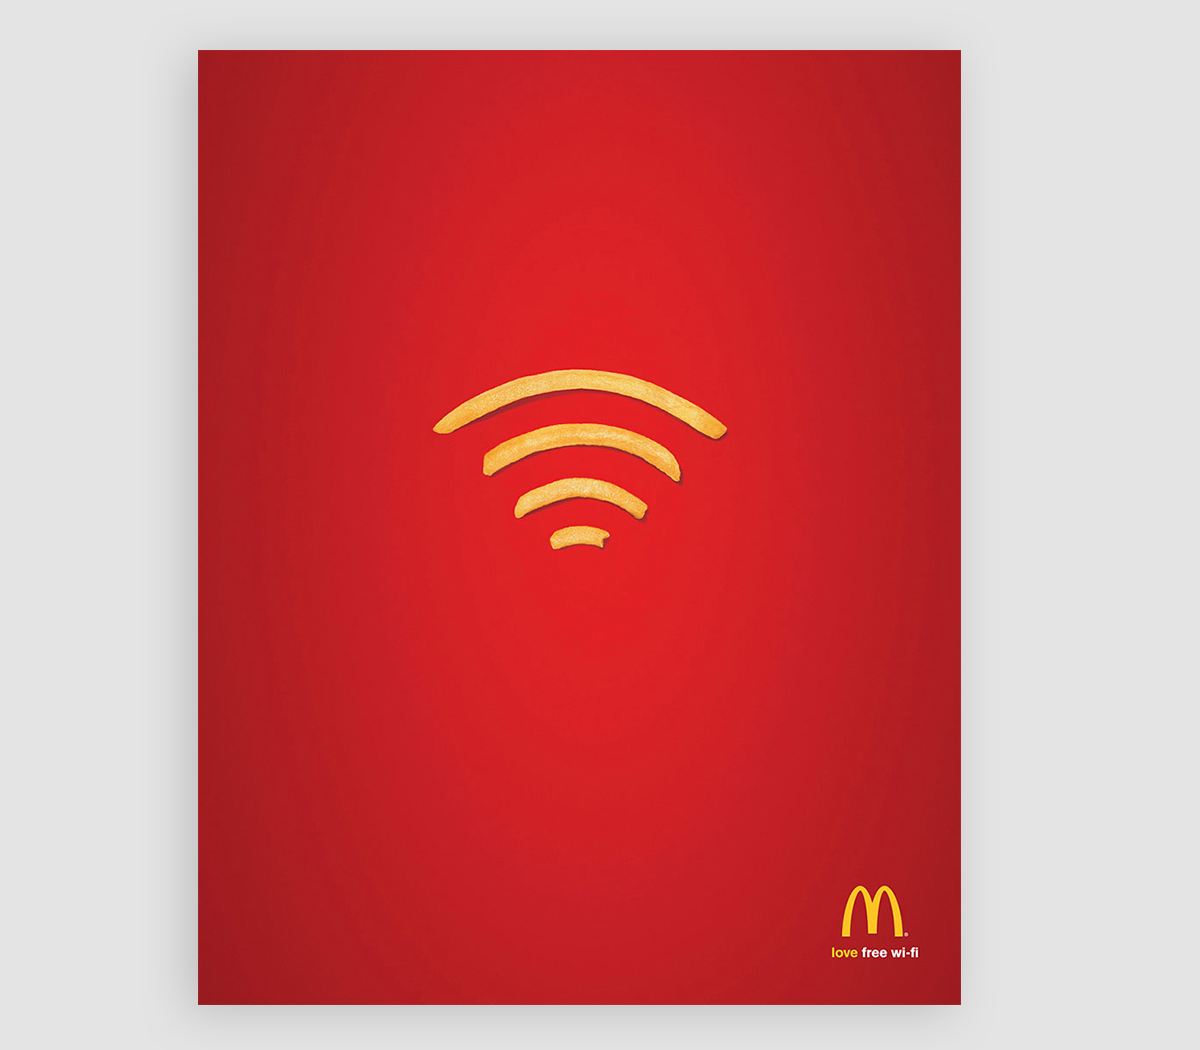 An ad showcasing french fries representing a Wifi signal.